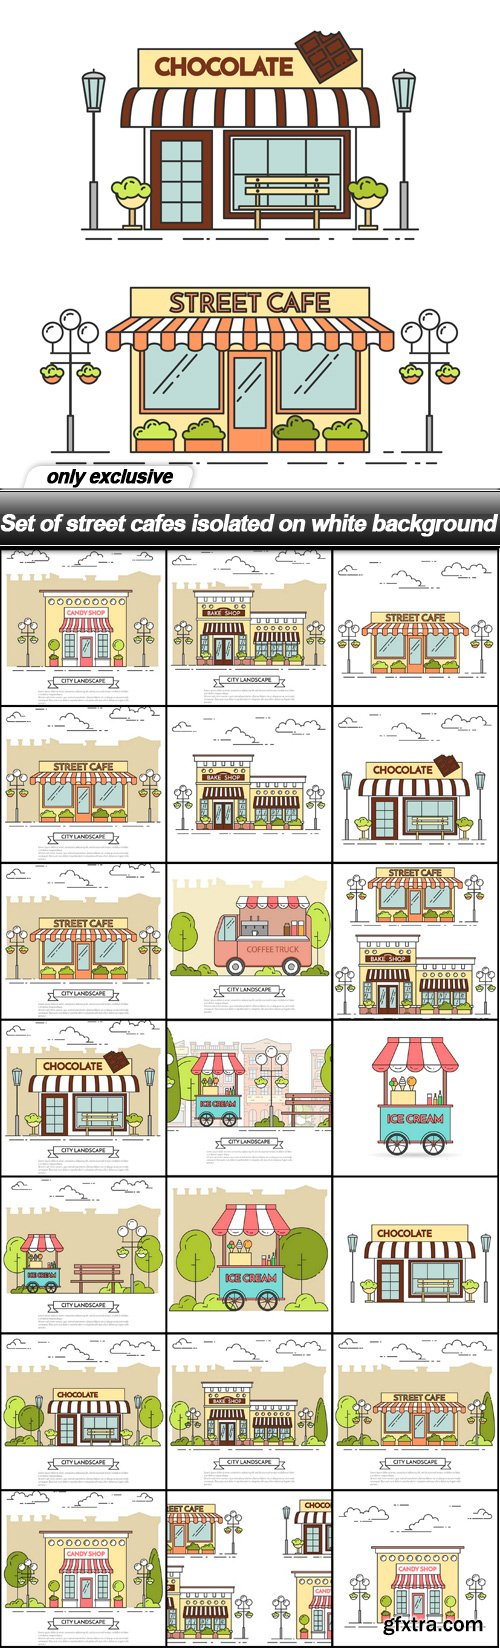 Set of street cafes isolated on white background - 22 EPS